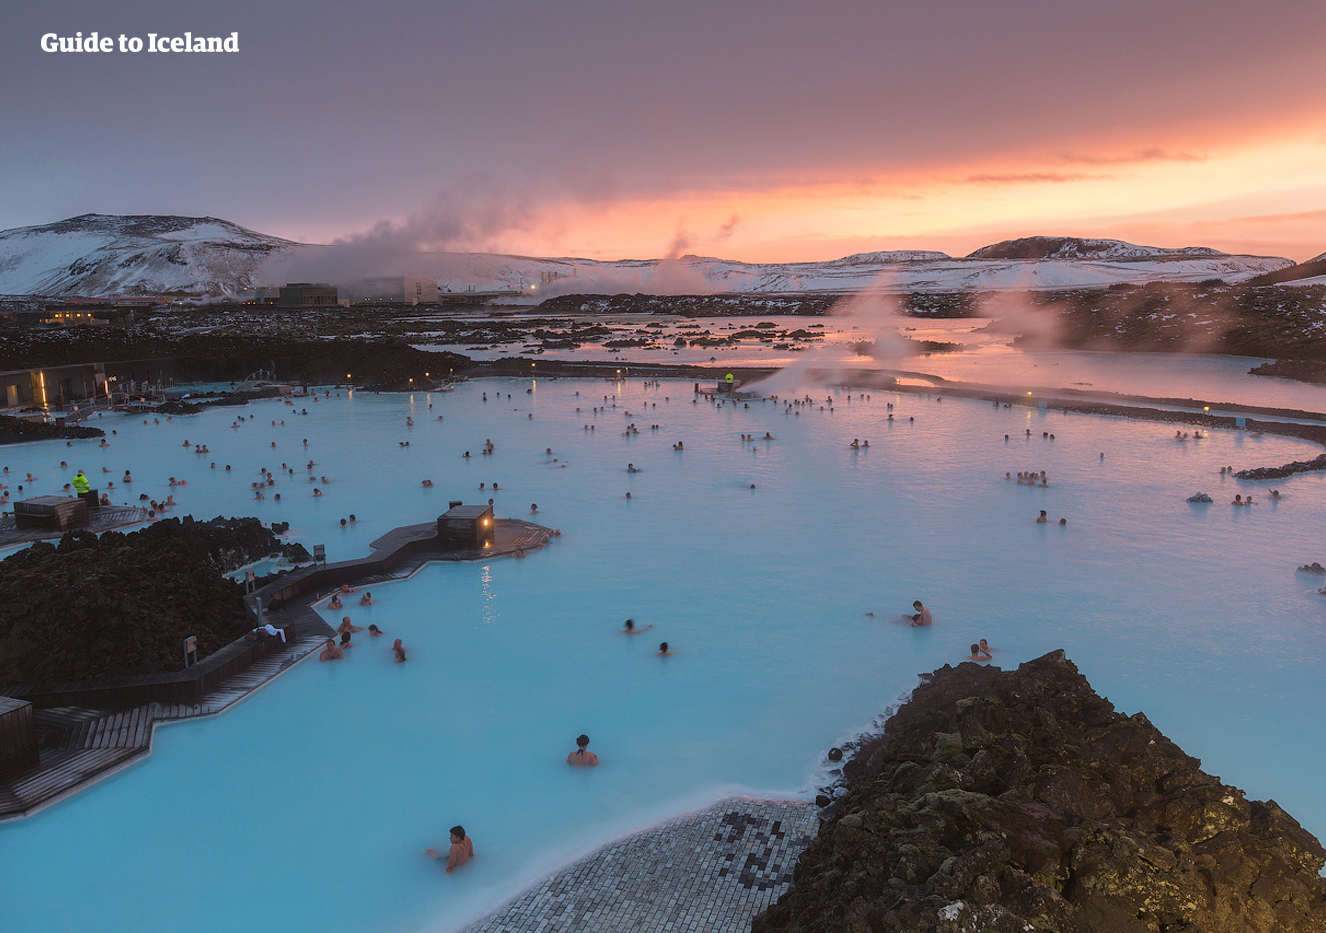 Guided 10 Day Summer Vacation Package of the Complete Ring Road of Iceland with Free Days in Reykjav - day 1